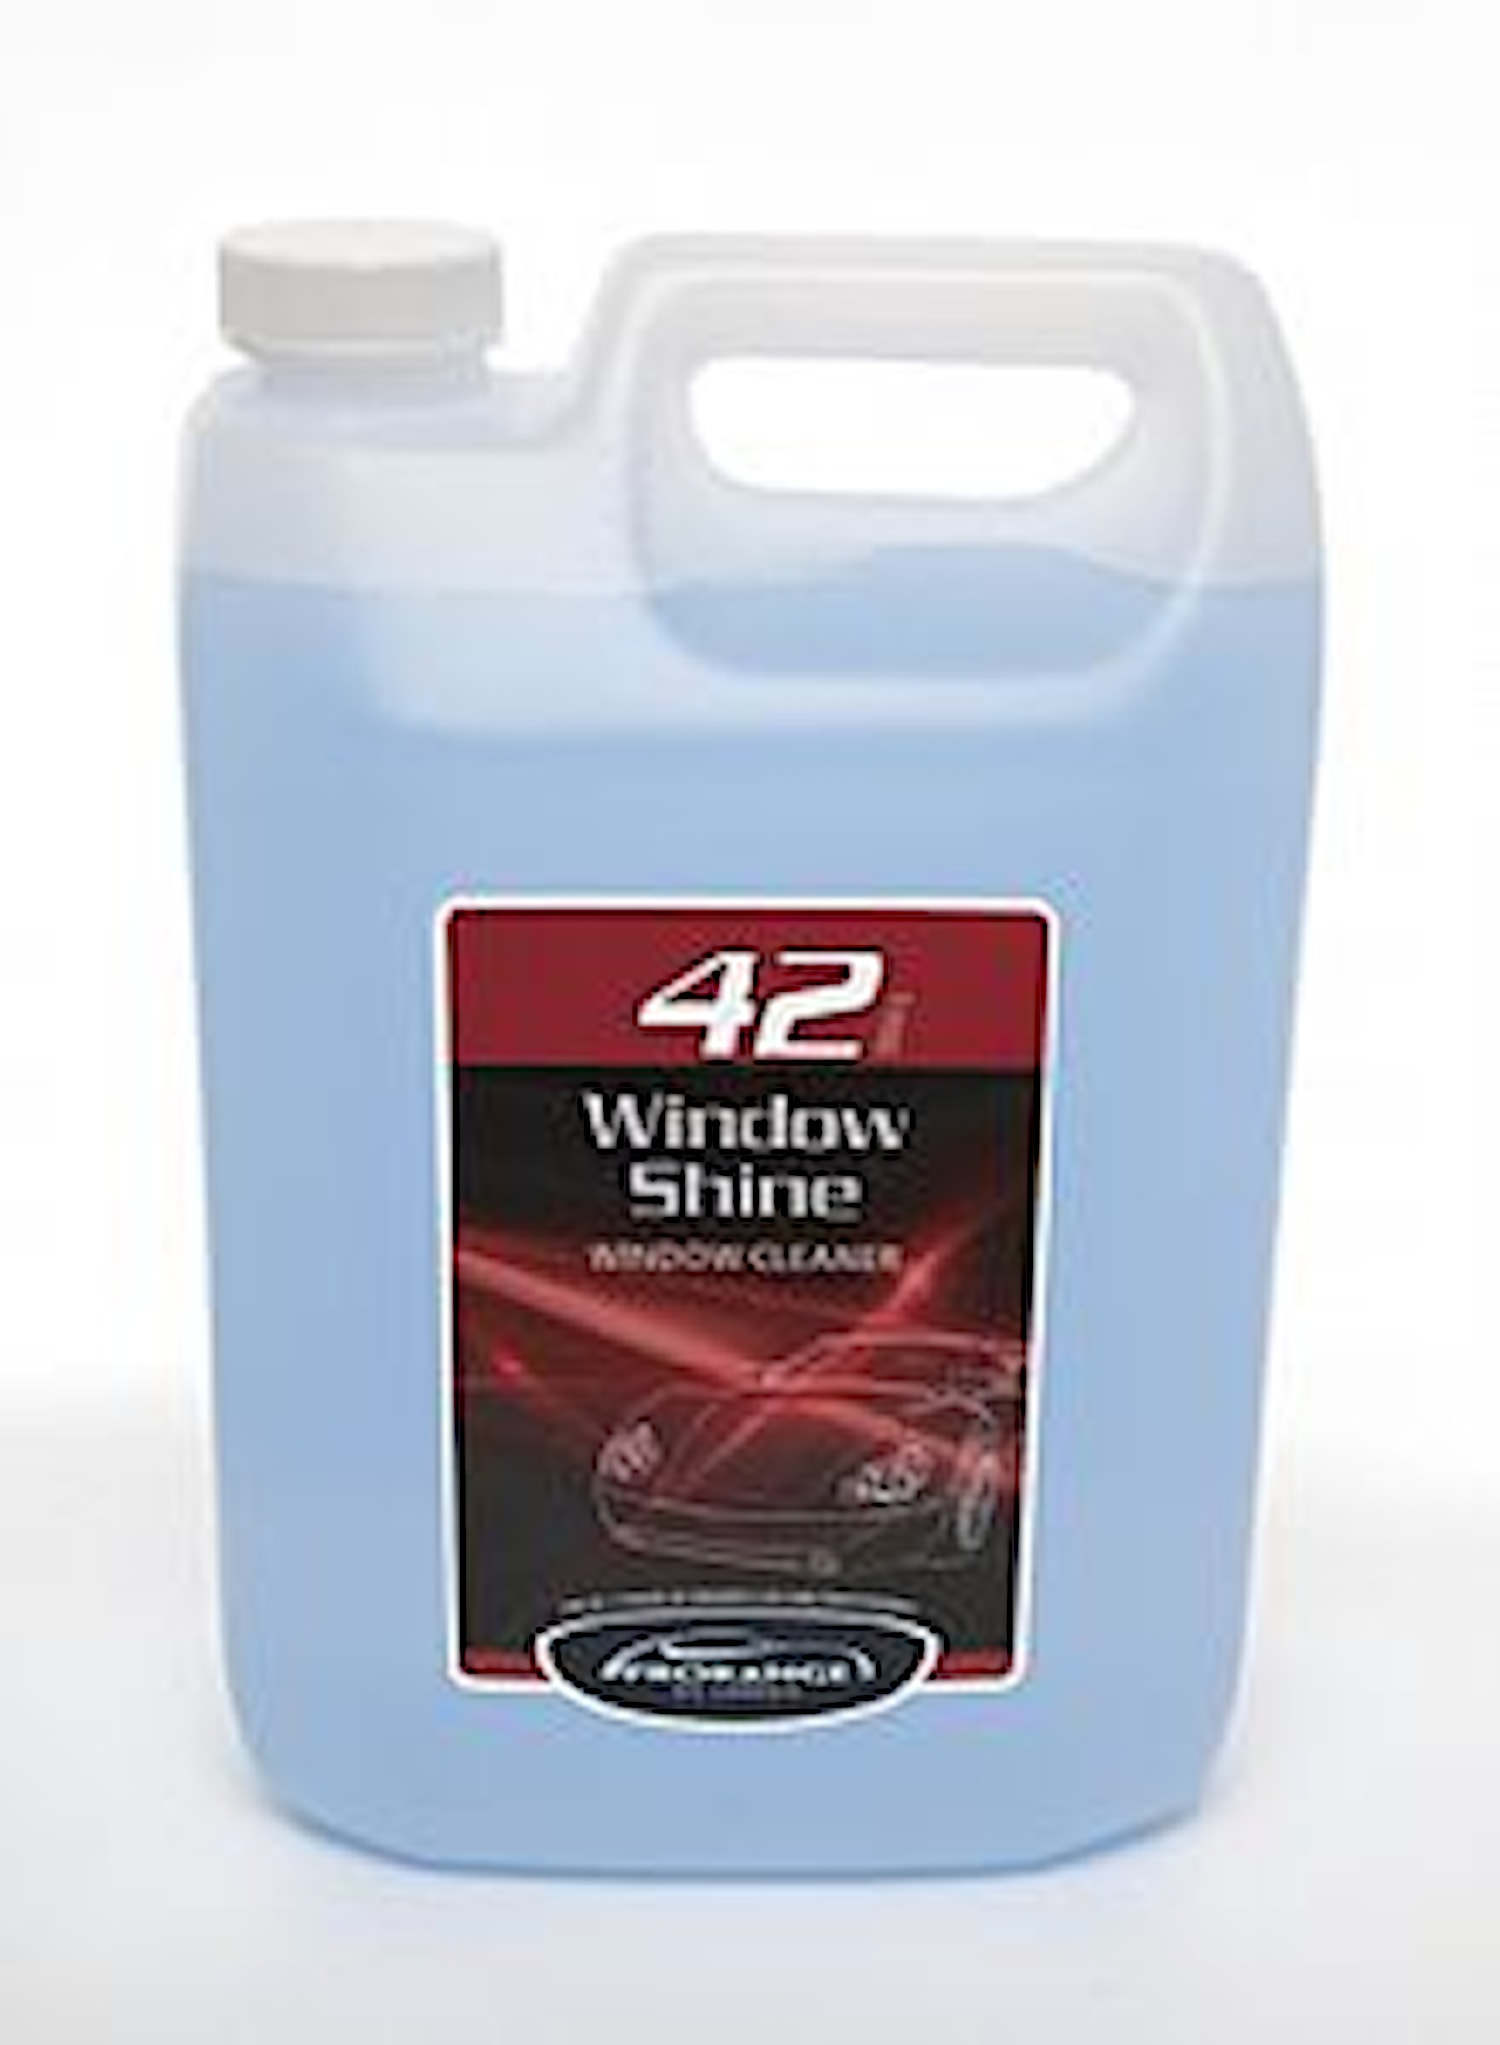 Window Shine 42i